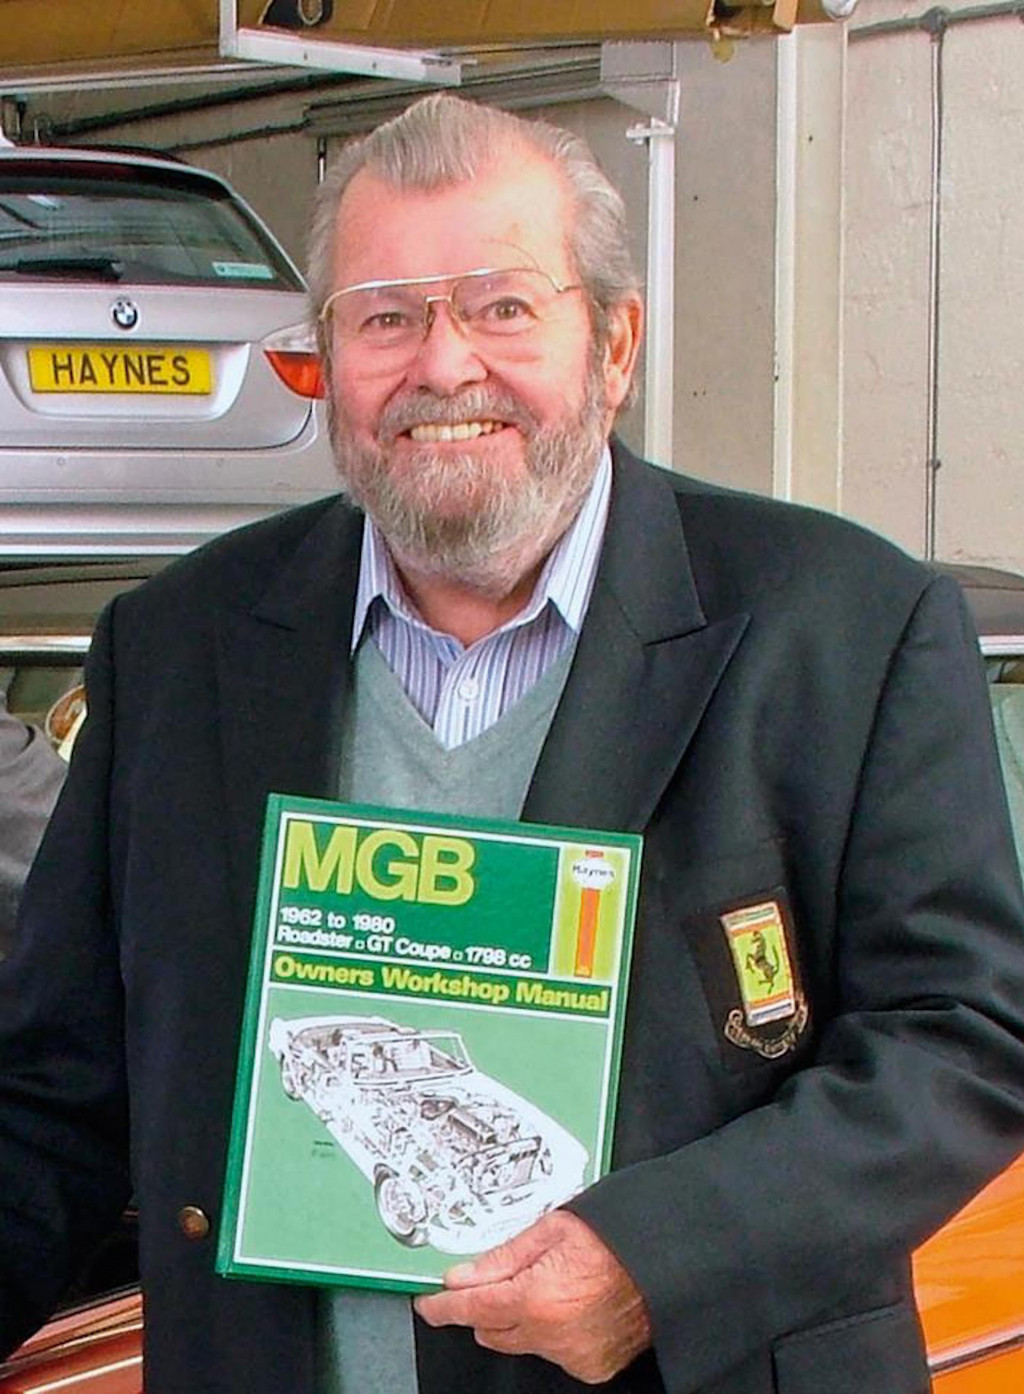 John Haynes, creator of the Haynes Manual